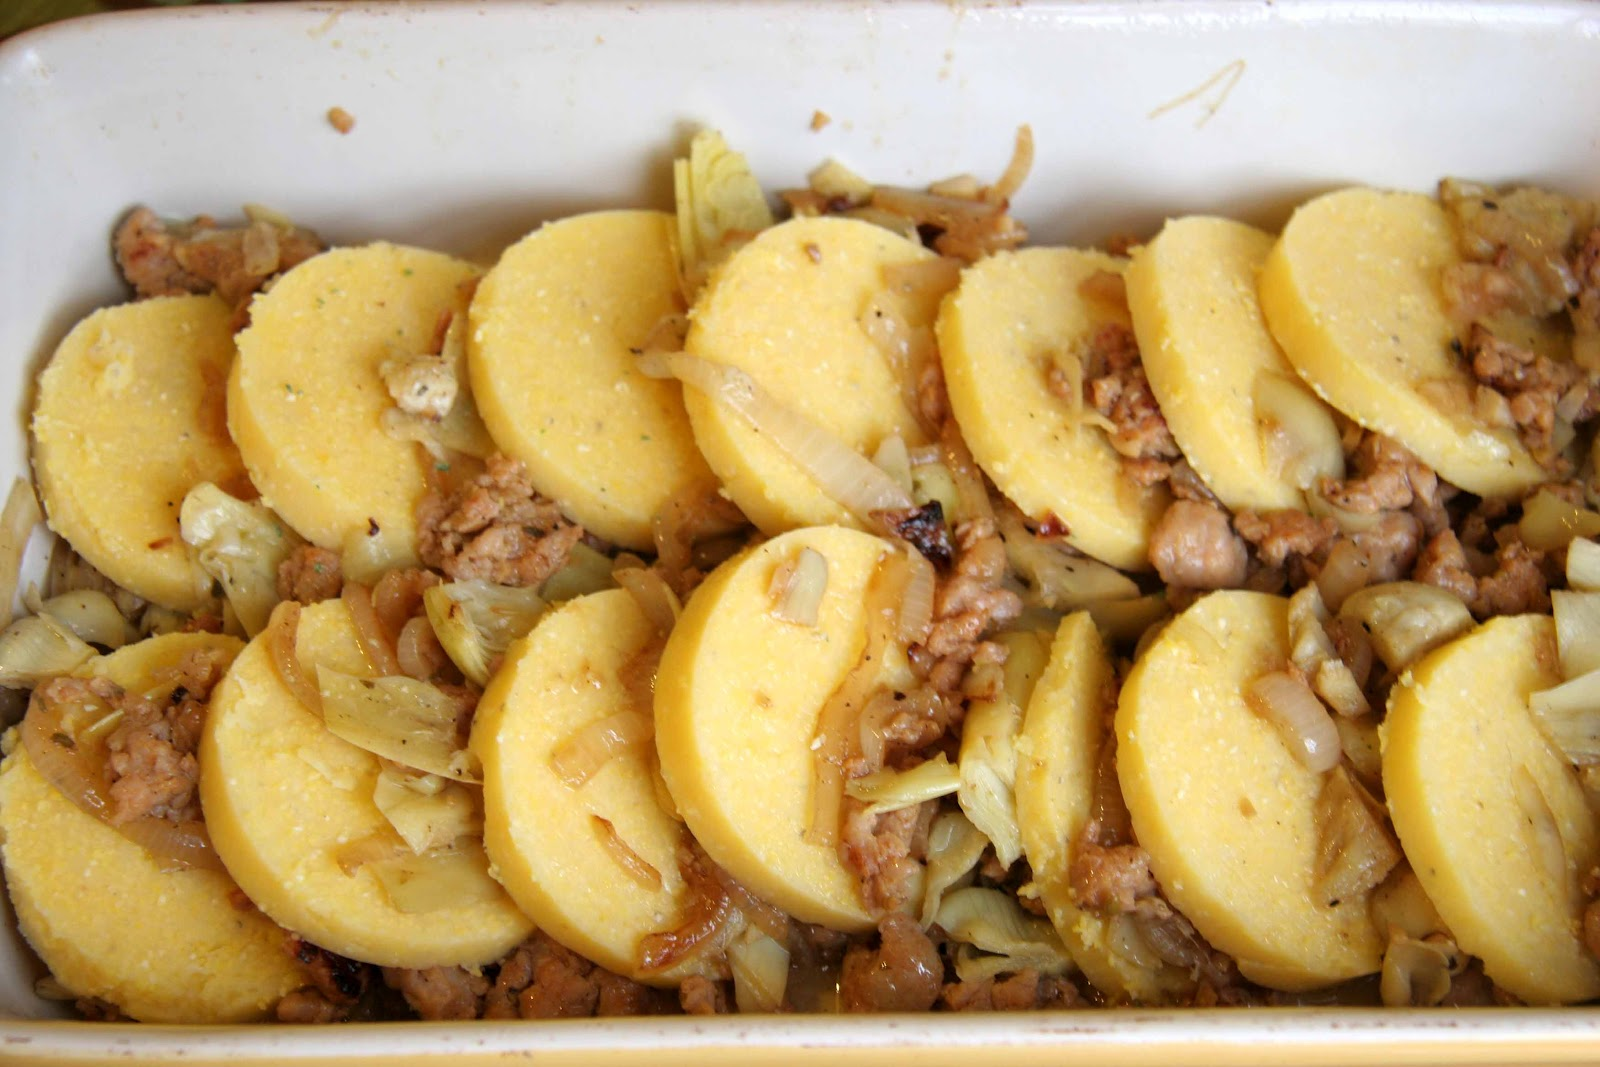 ... Who's Cookin' Now: Baked Polenta with sausage and artichoke hearts